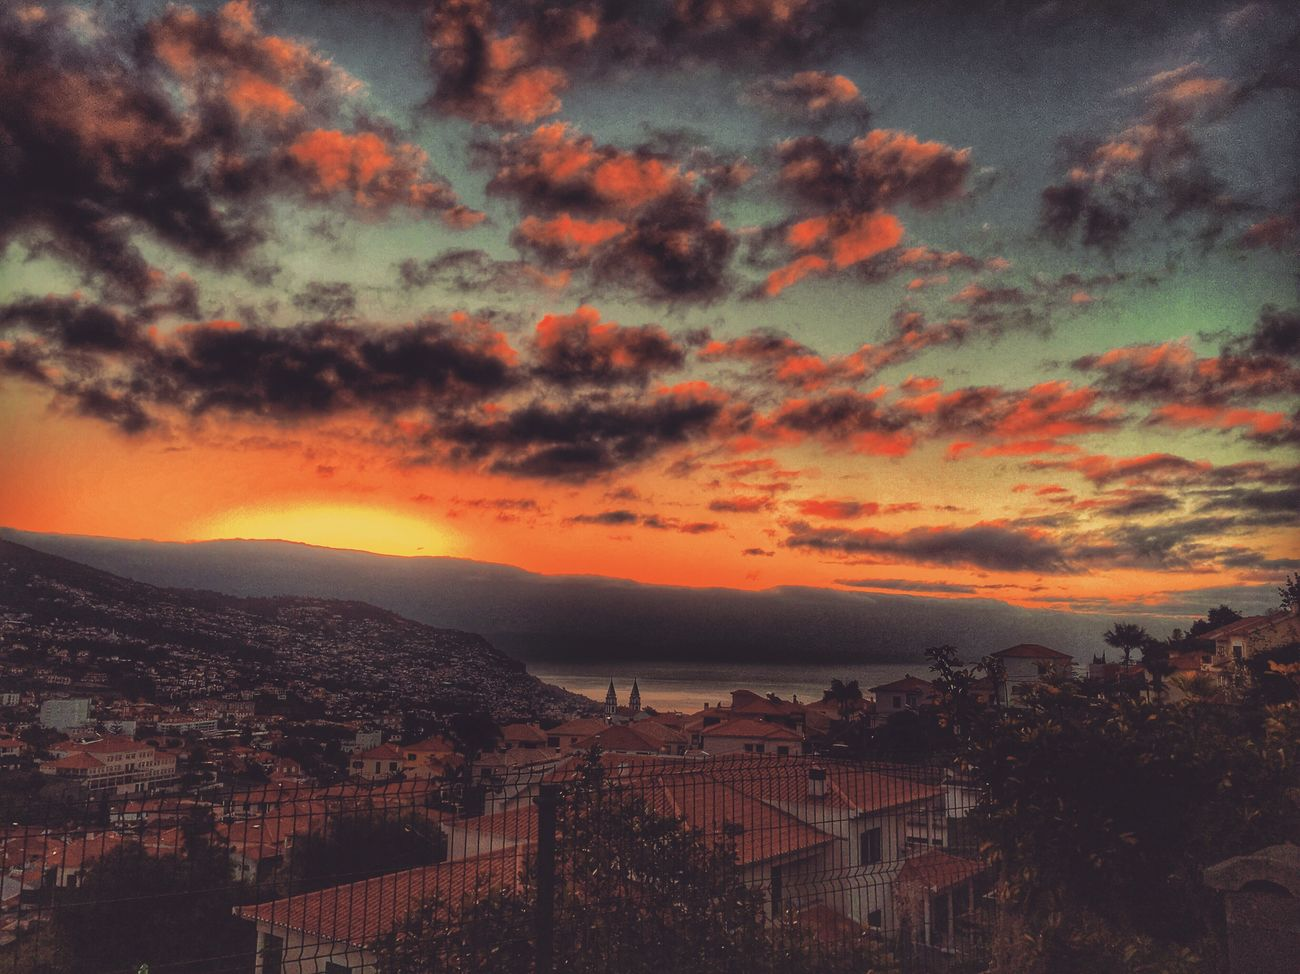 Madeira Island Funchal IloveMadeira Visitmadeira Sunrise Sun Sky Clouds Nature Nature Photography Iphone6s Photography Snapseed HDR First Eyeem Photo